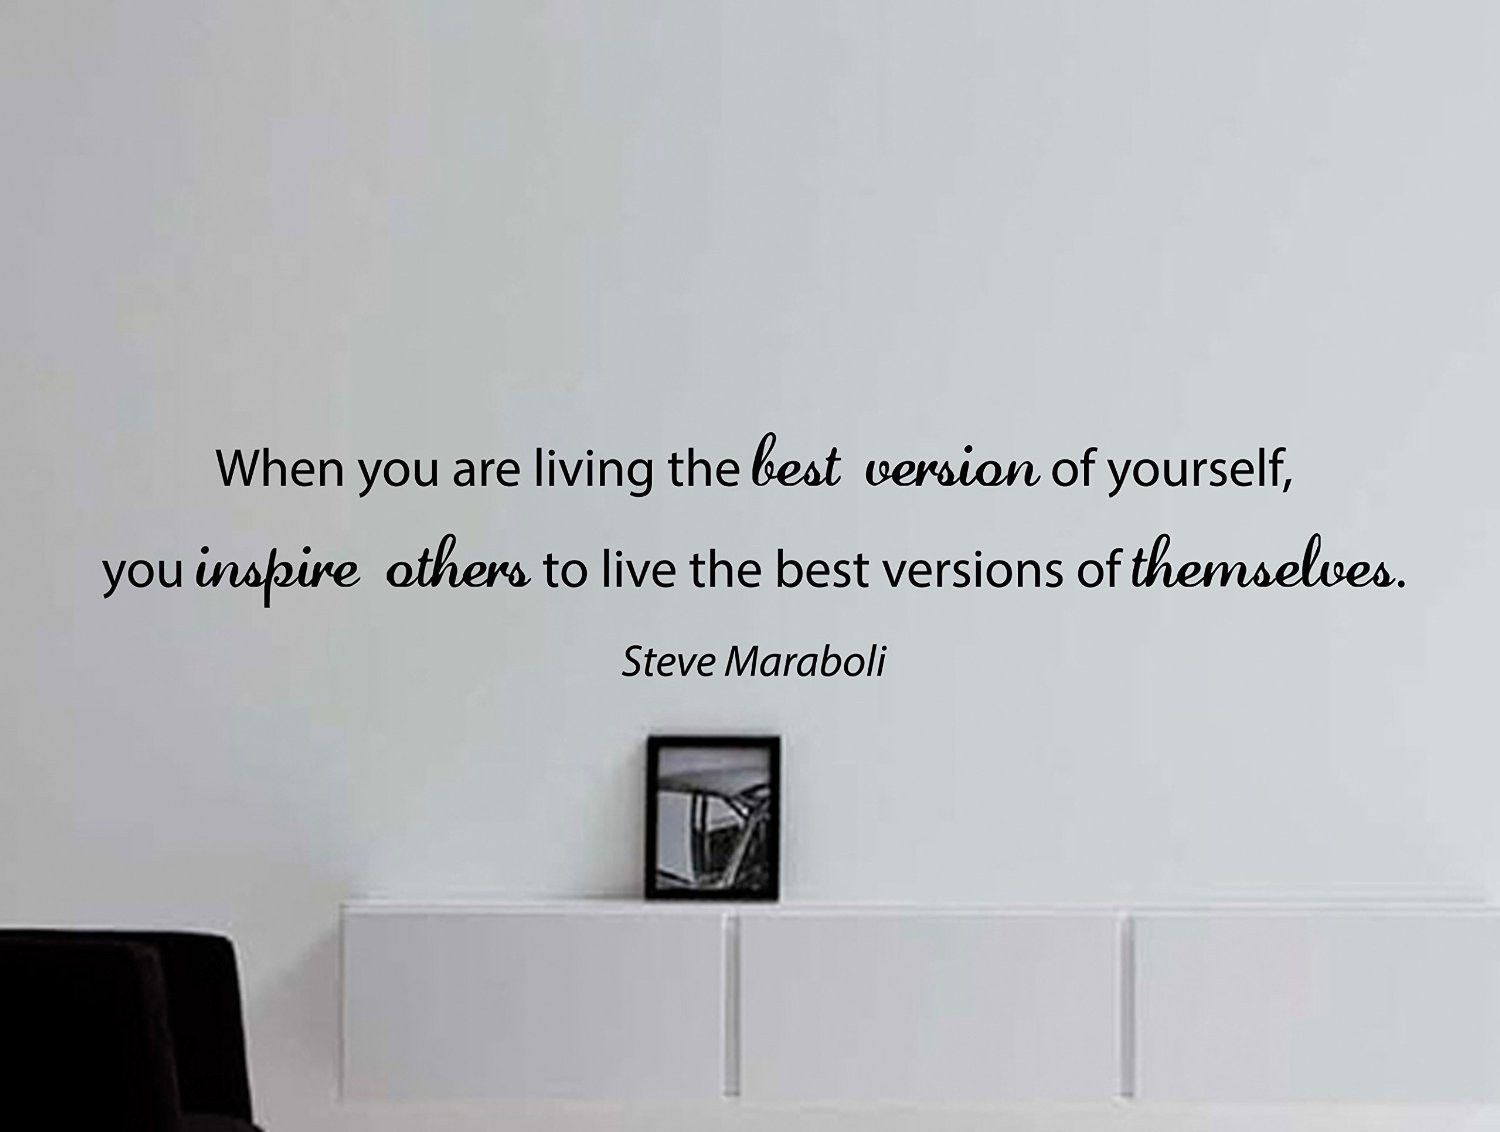 "Steve Maraboli Quote Inspirational Motivational Wall Decal Home Décor ""When You Are Living the Best Version"" 48x9 Inches"